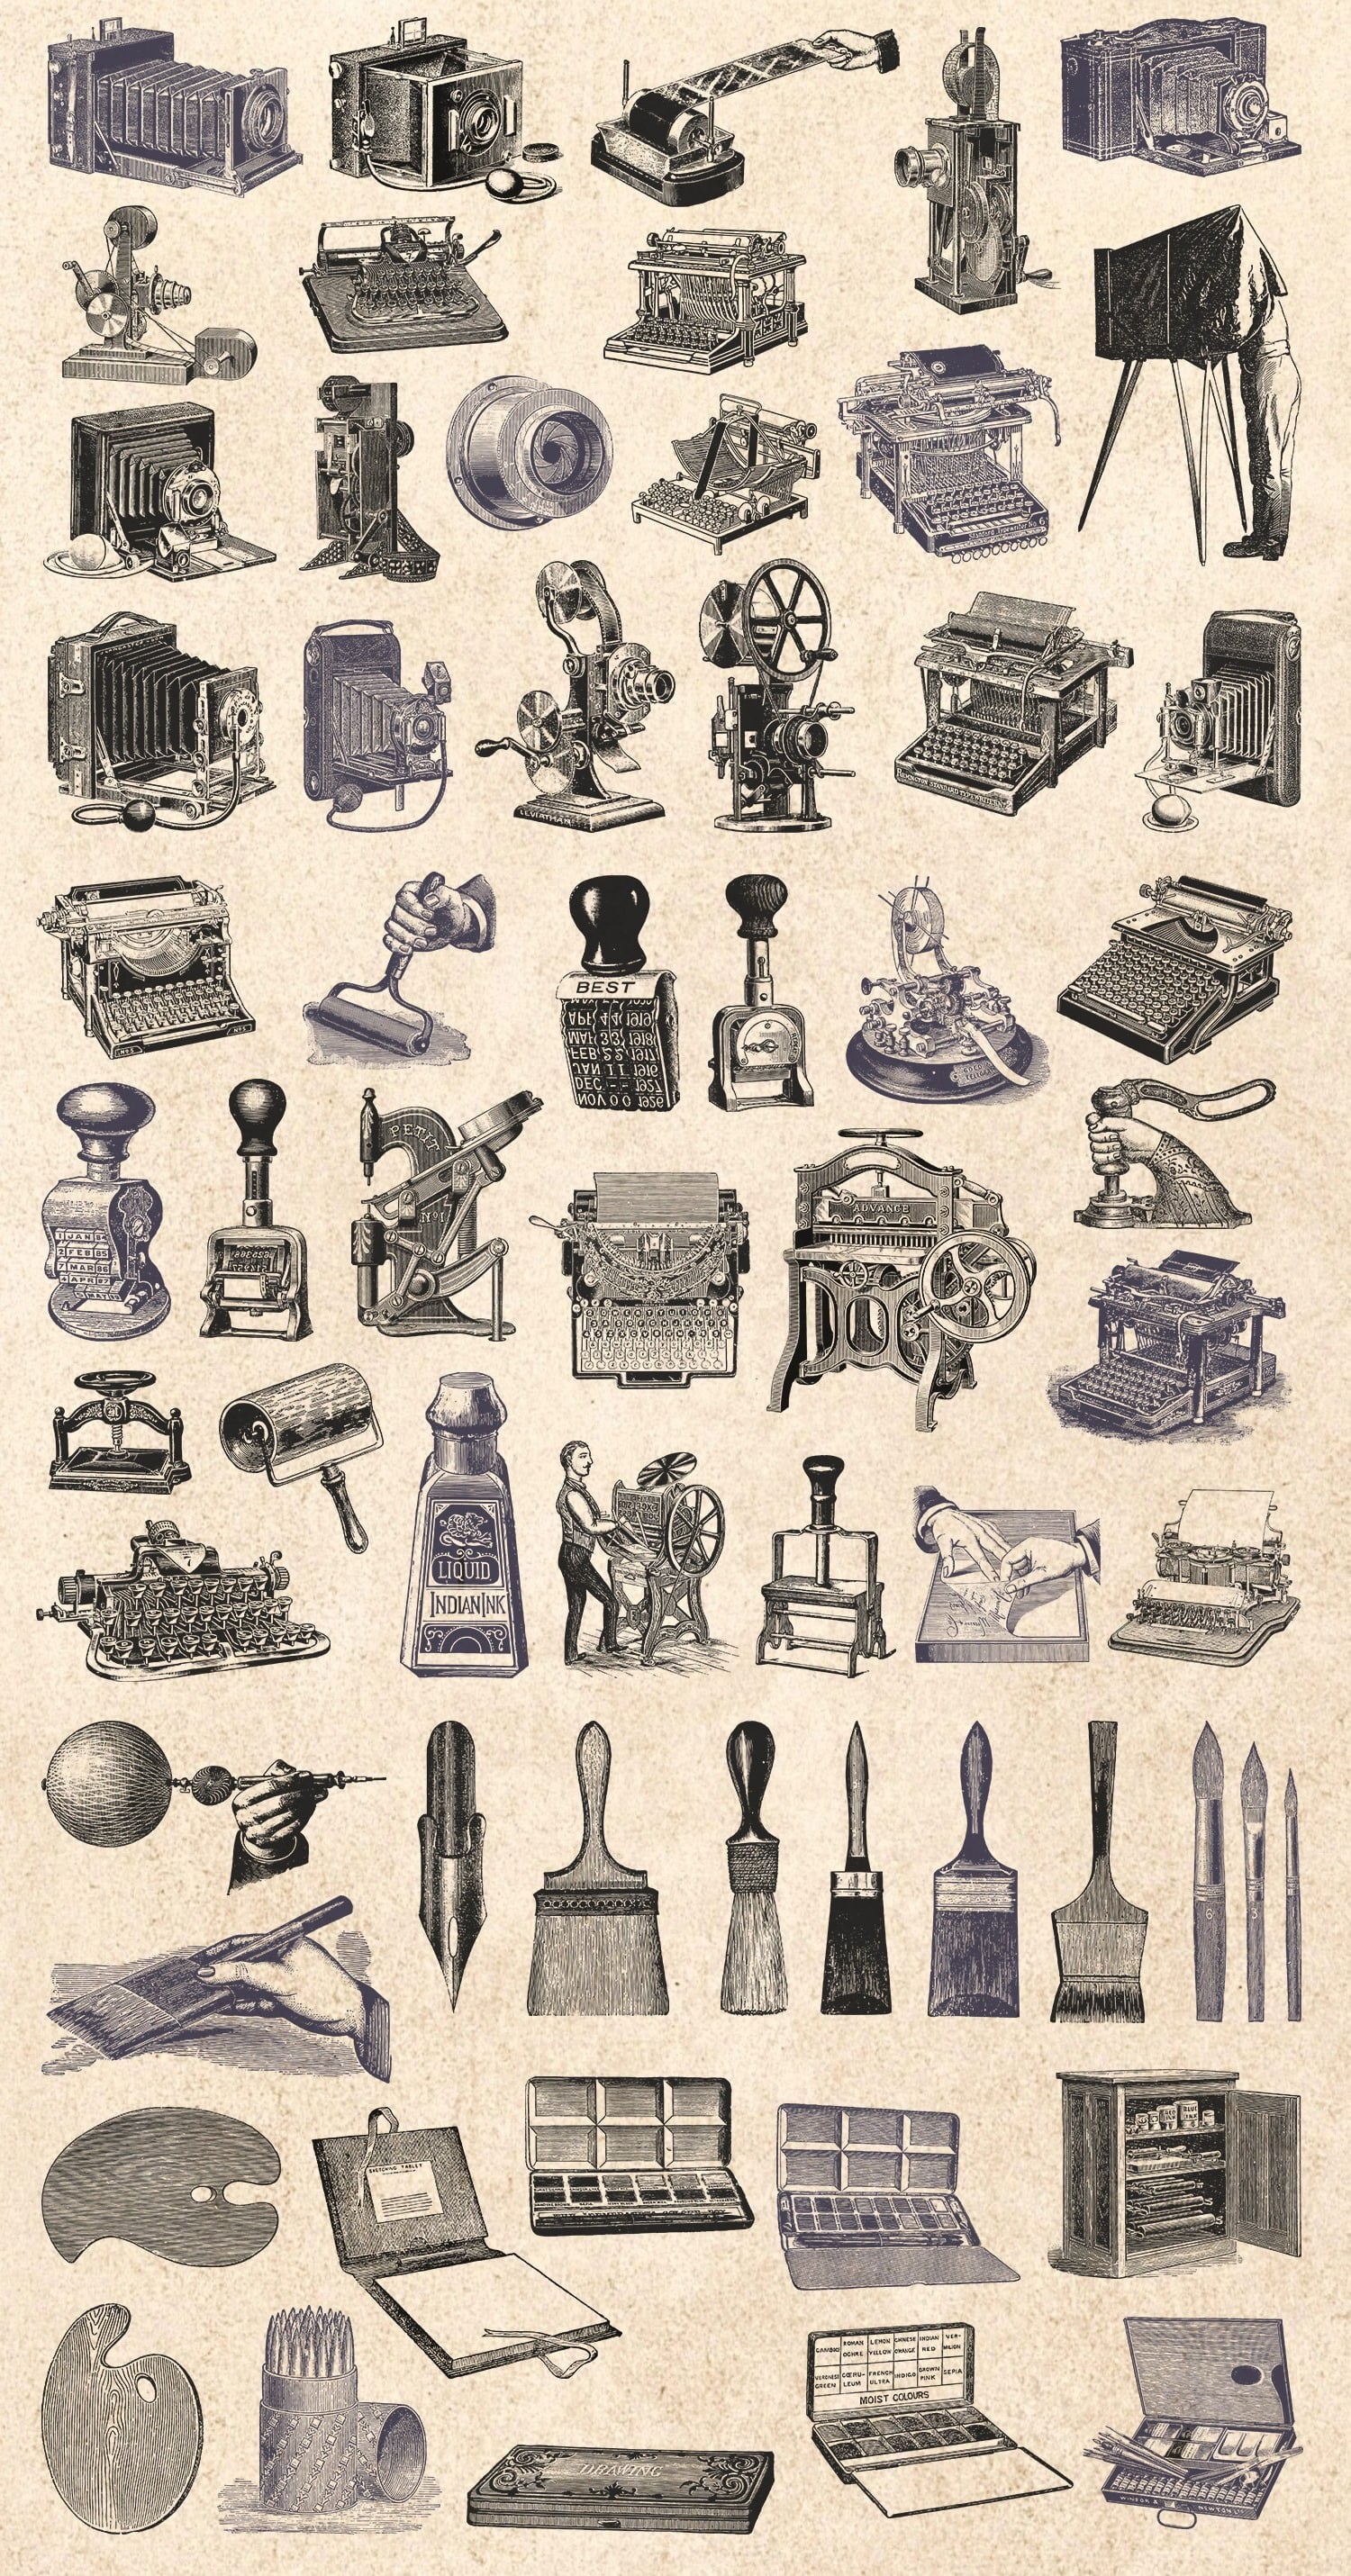 1000 Vintage Illustrations with 80% OFF - 11 creator